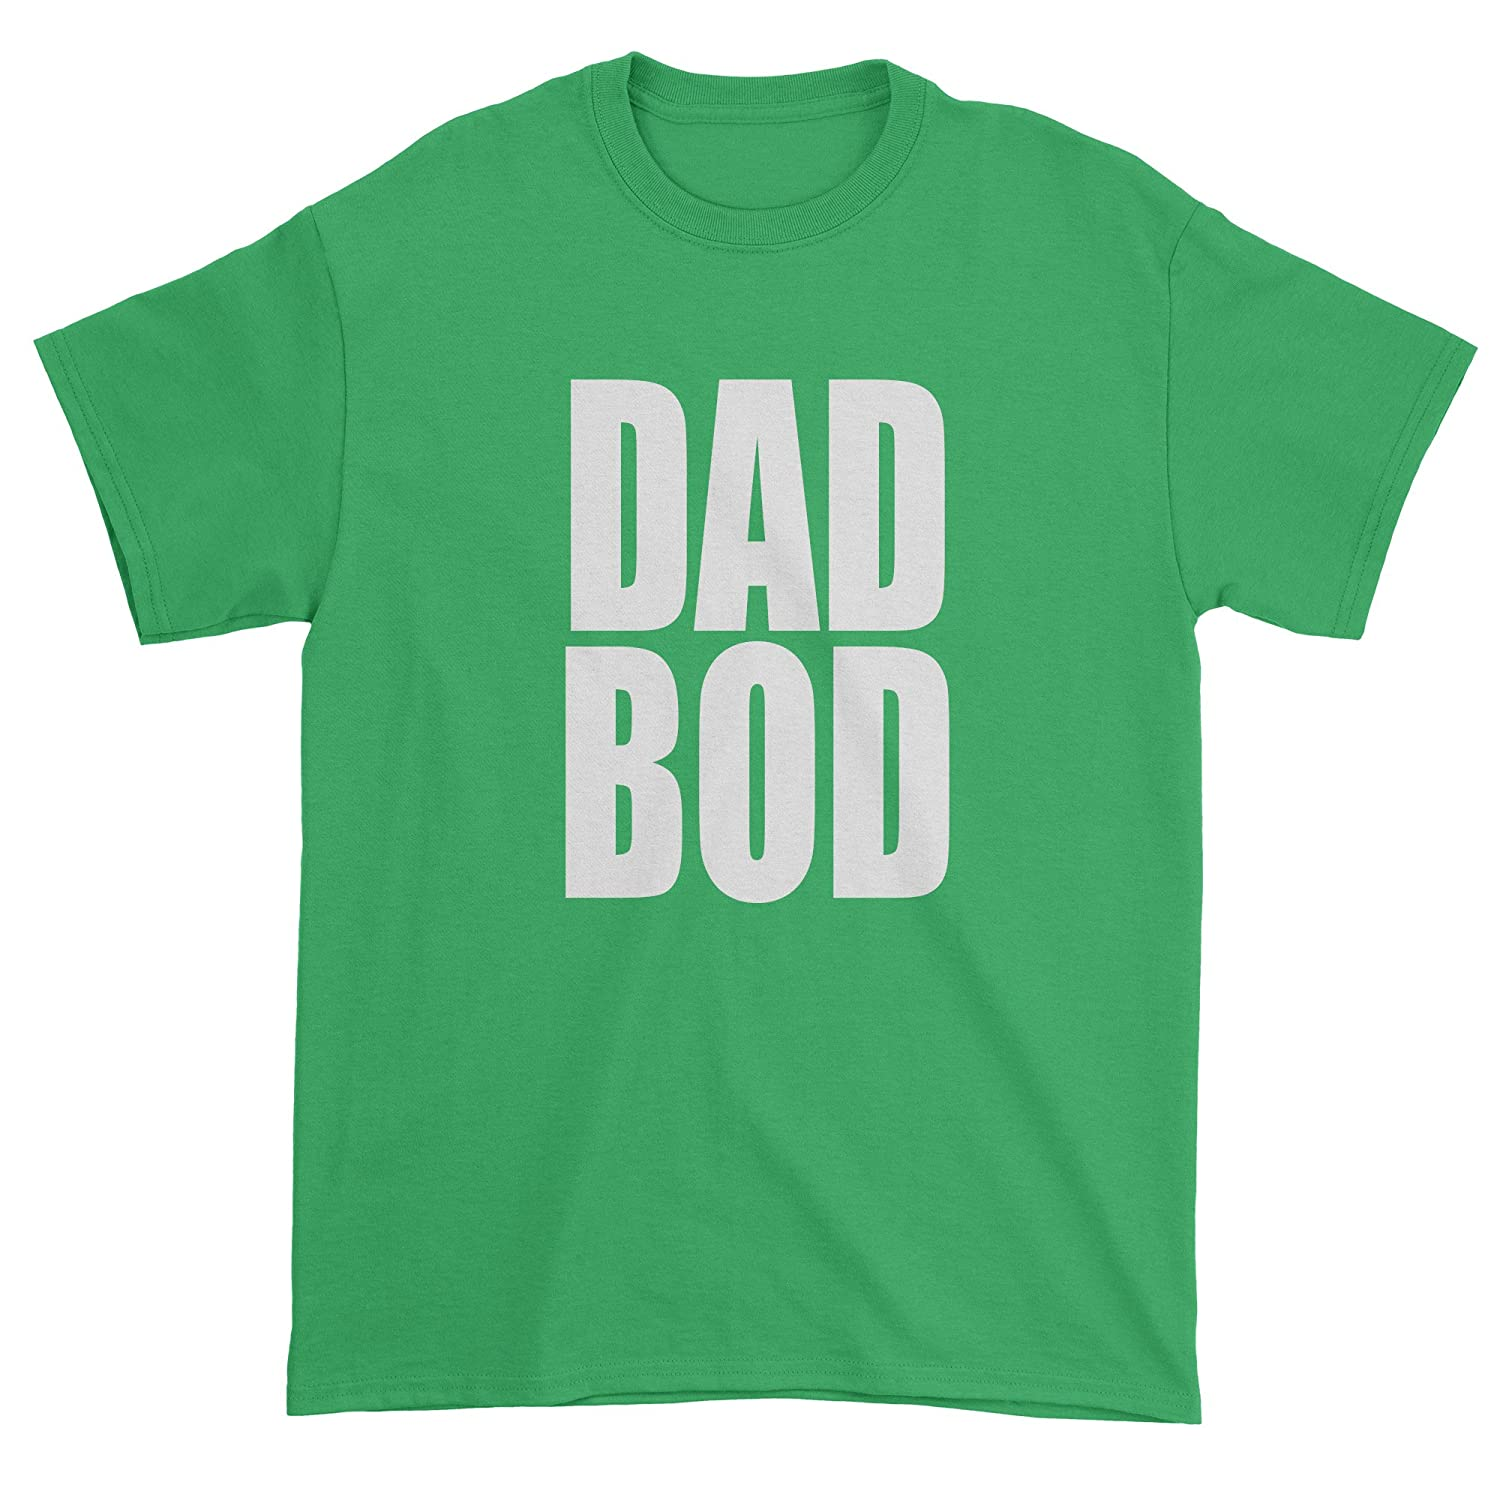 7e9a957f1 Amazon.com: Expression Tees Dad BOD Father's Day Mens T-Shirt: Clothing